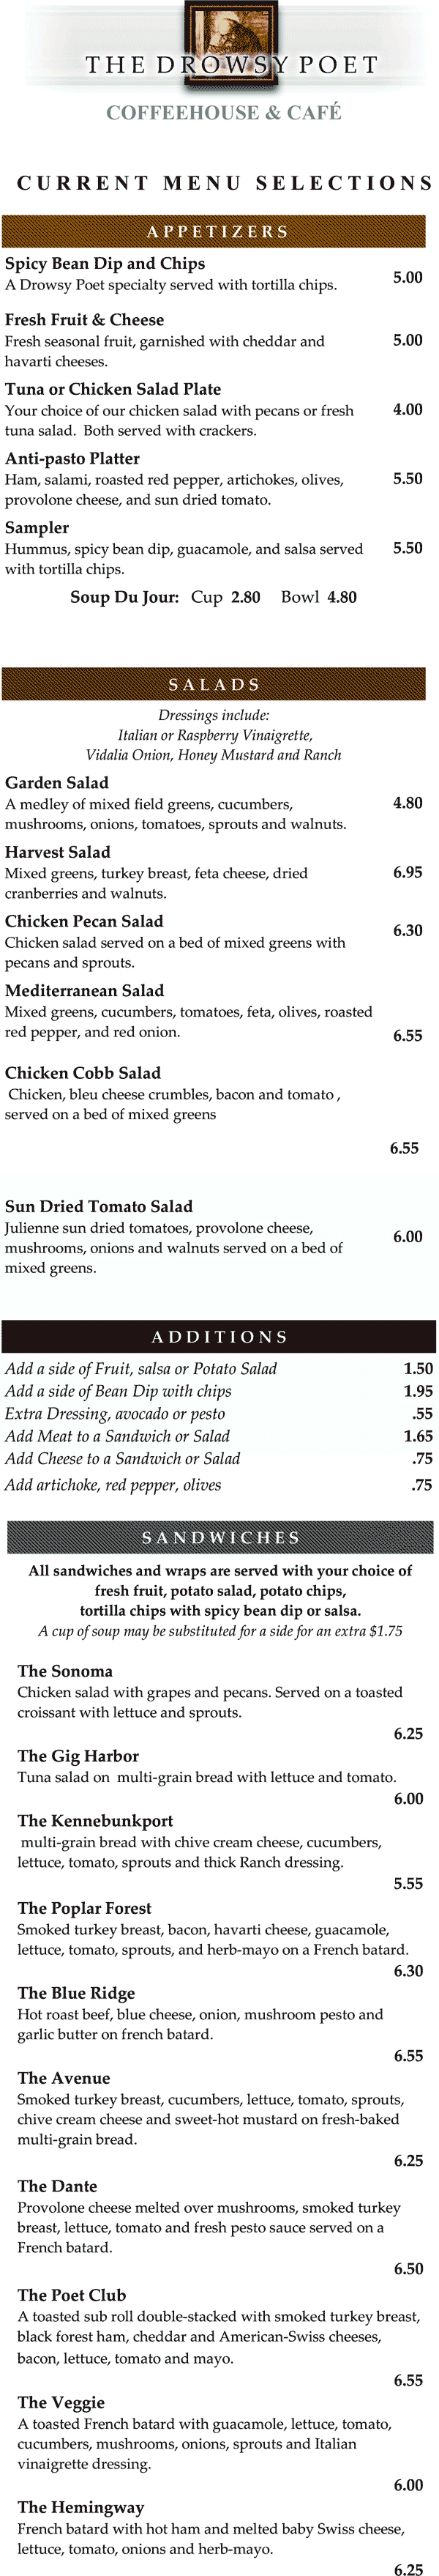 The Drowsy Poet Cafe Menu